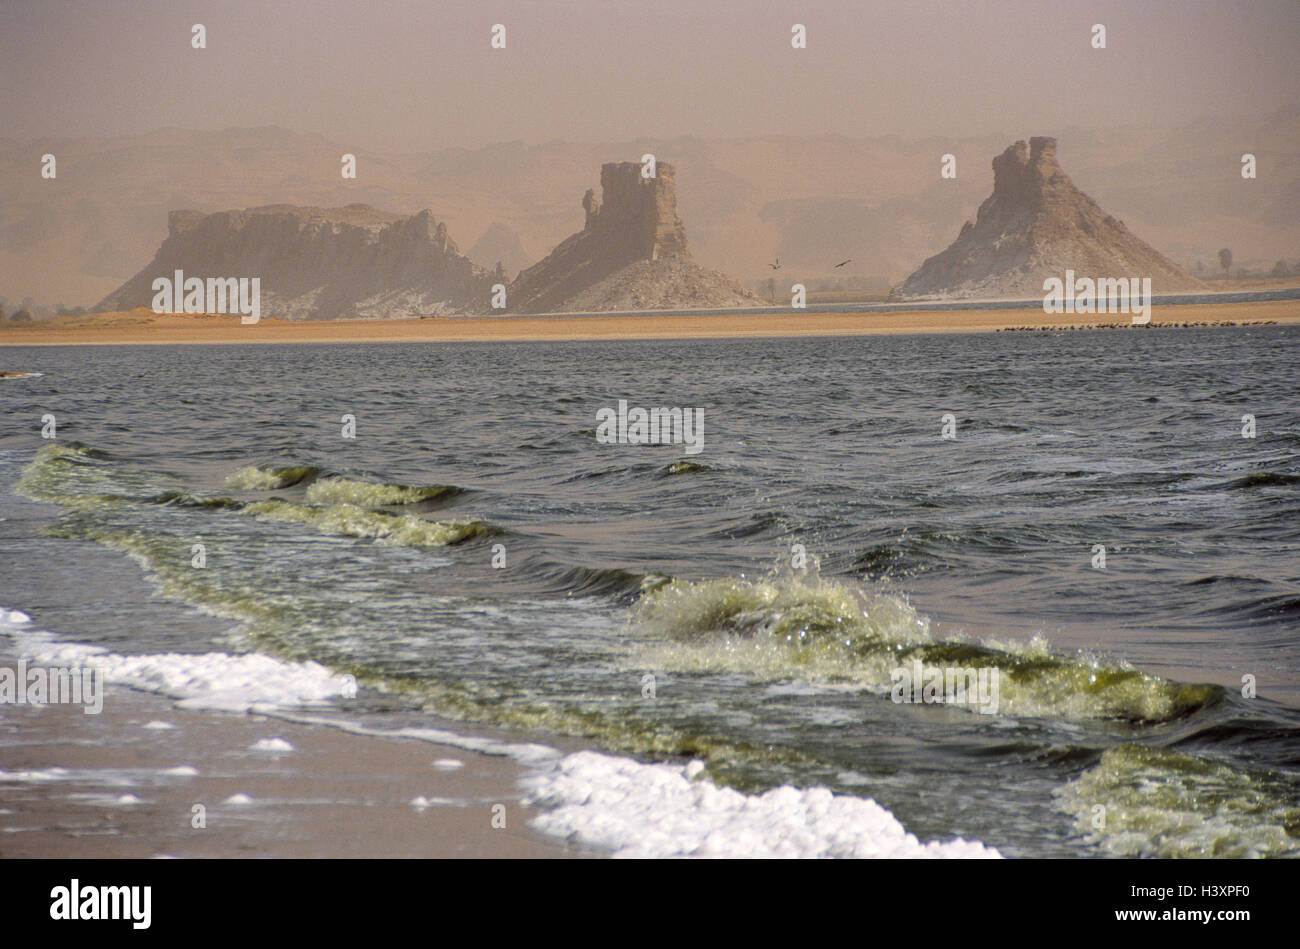 Chad, mesa country Ennedi, salt lake Ounianga Serir, Central, Africa, landlocked country, Sahara, Sahara waters, - Stock Image